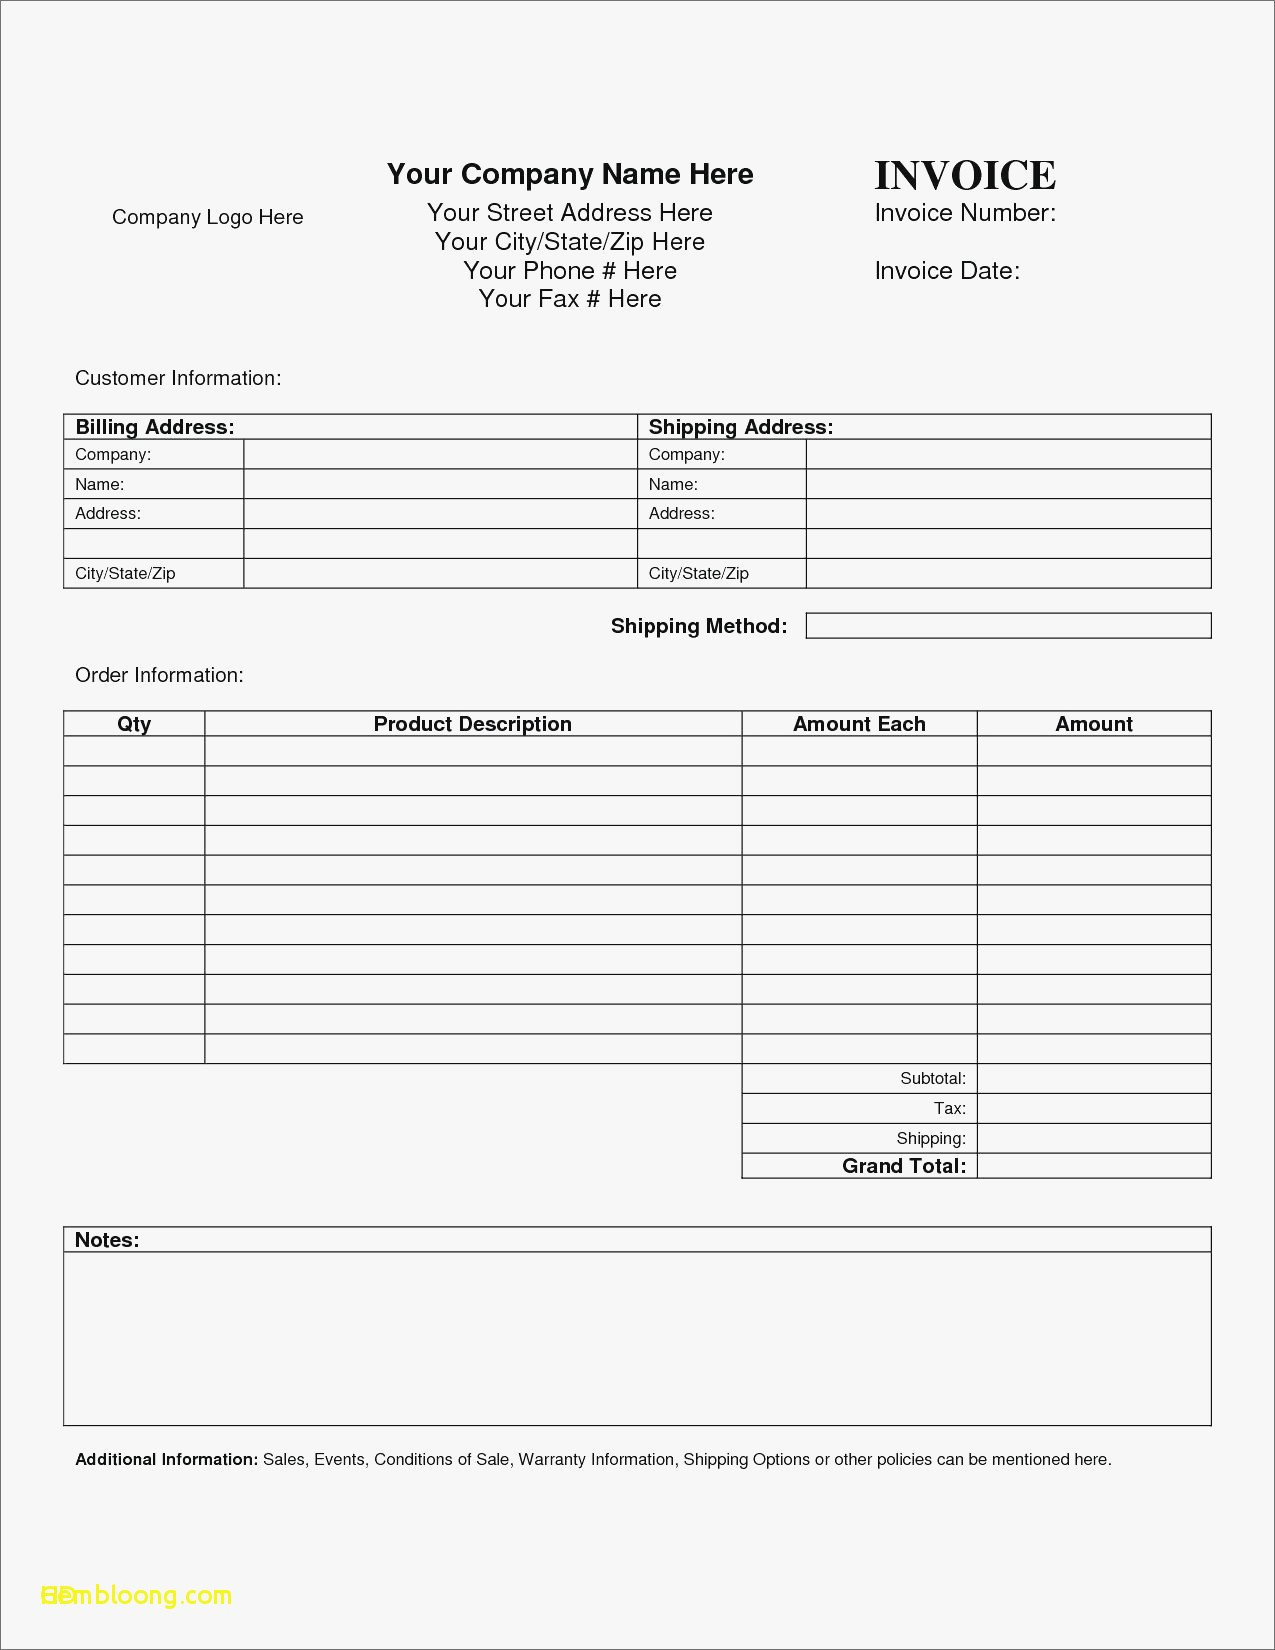 Lawn Care Invoice Template Lovely New Sample Lawn Care Invoice